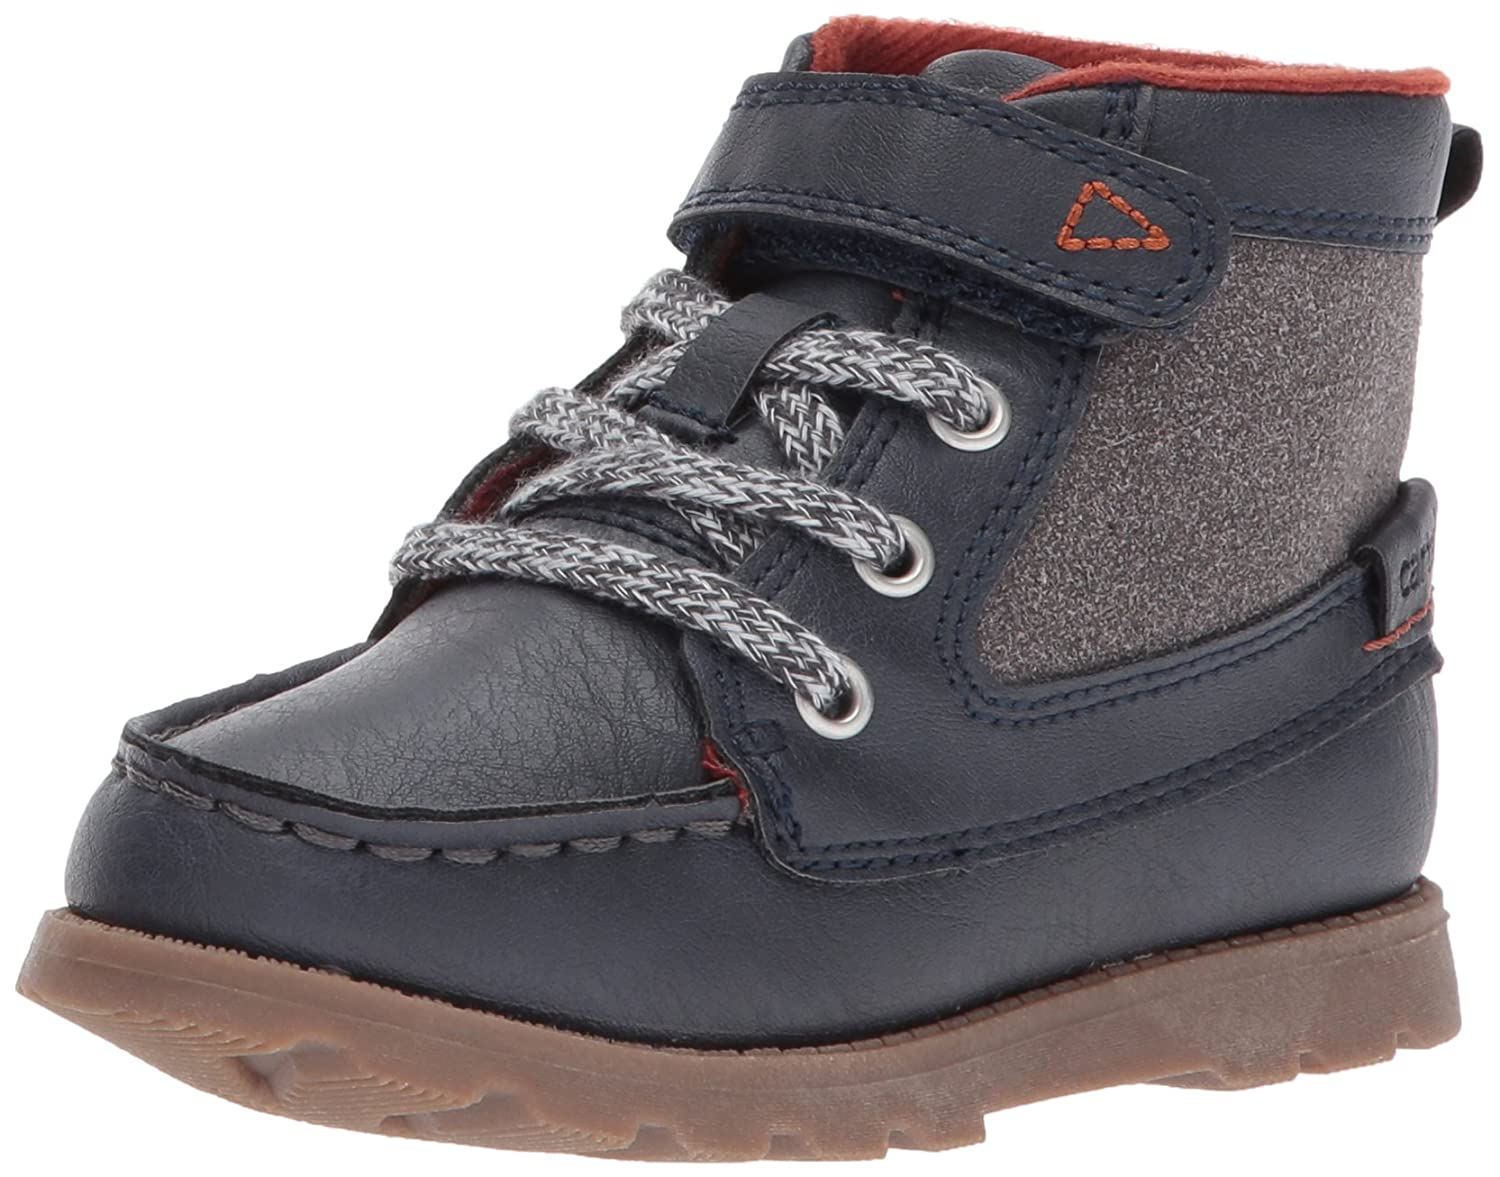 carter's Kids Bradford Boy's Fashion Boot Carter's BRADFORD - K